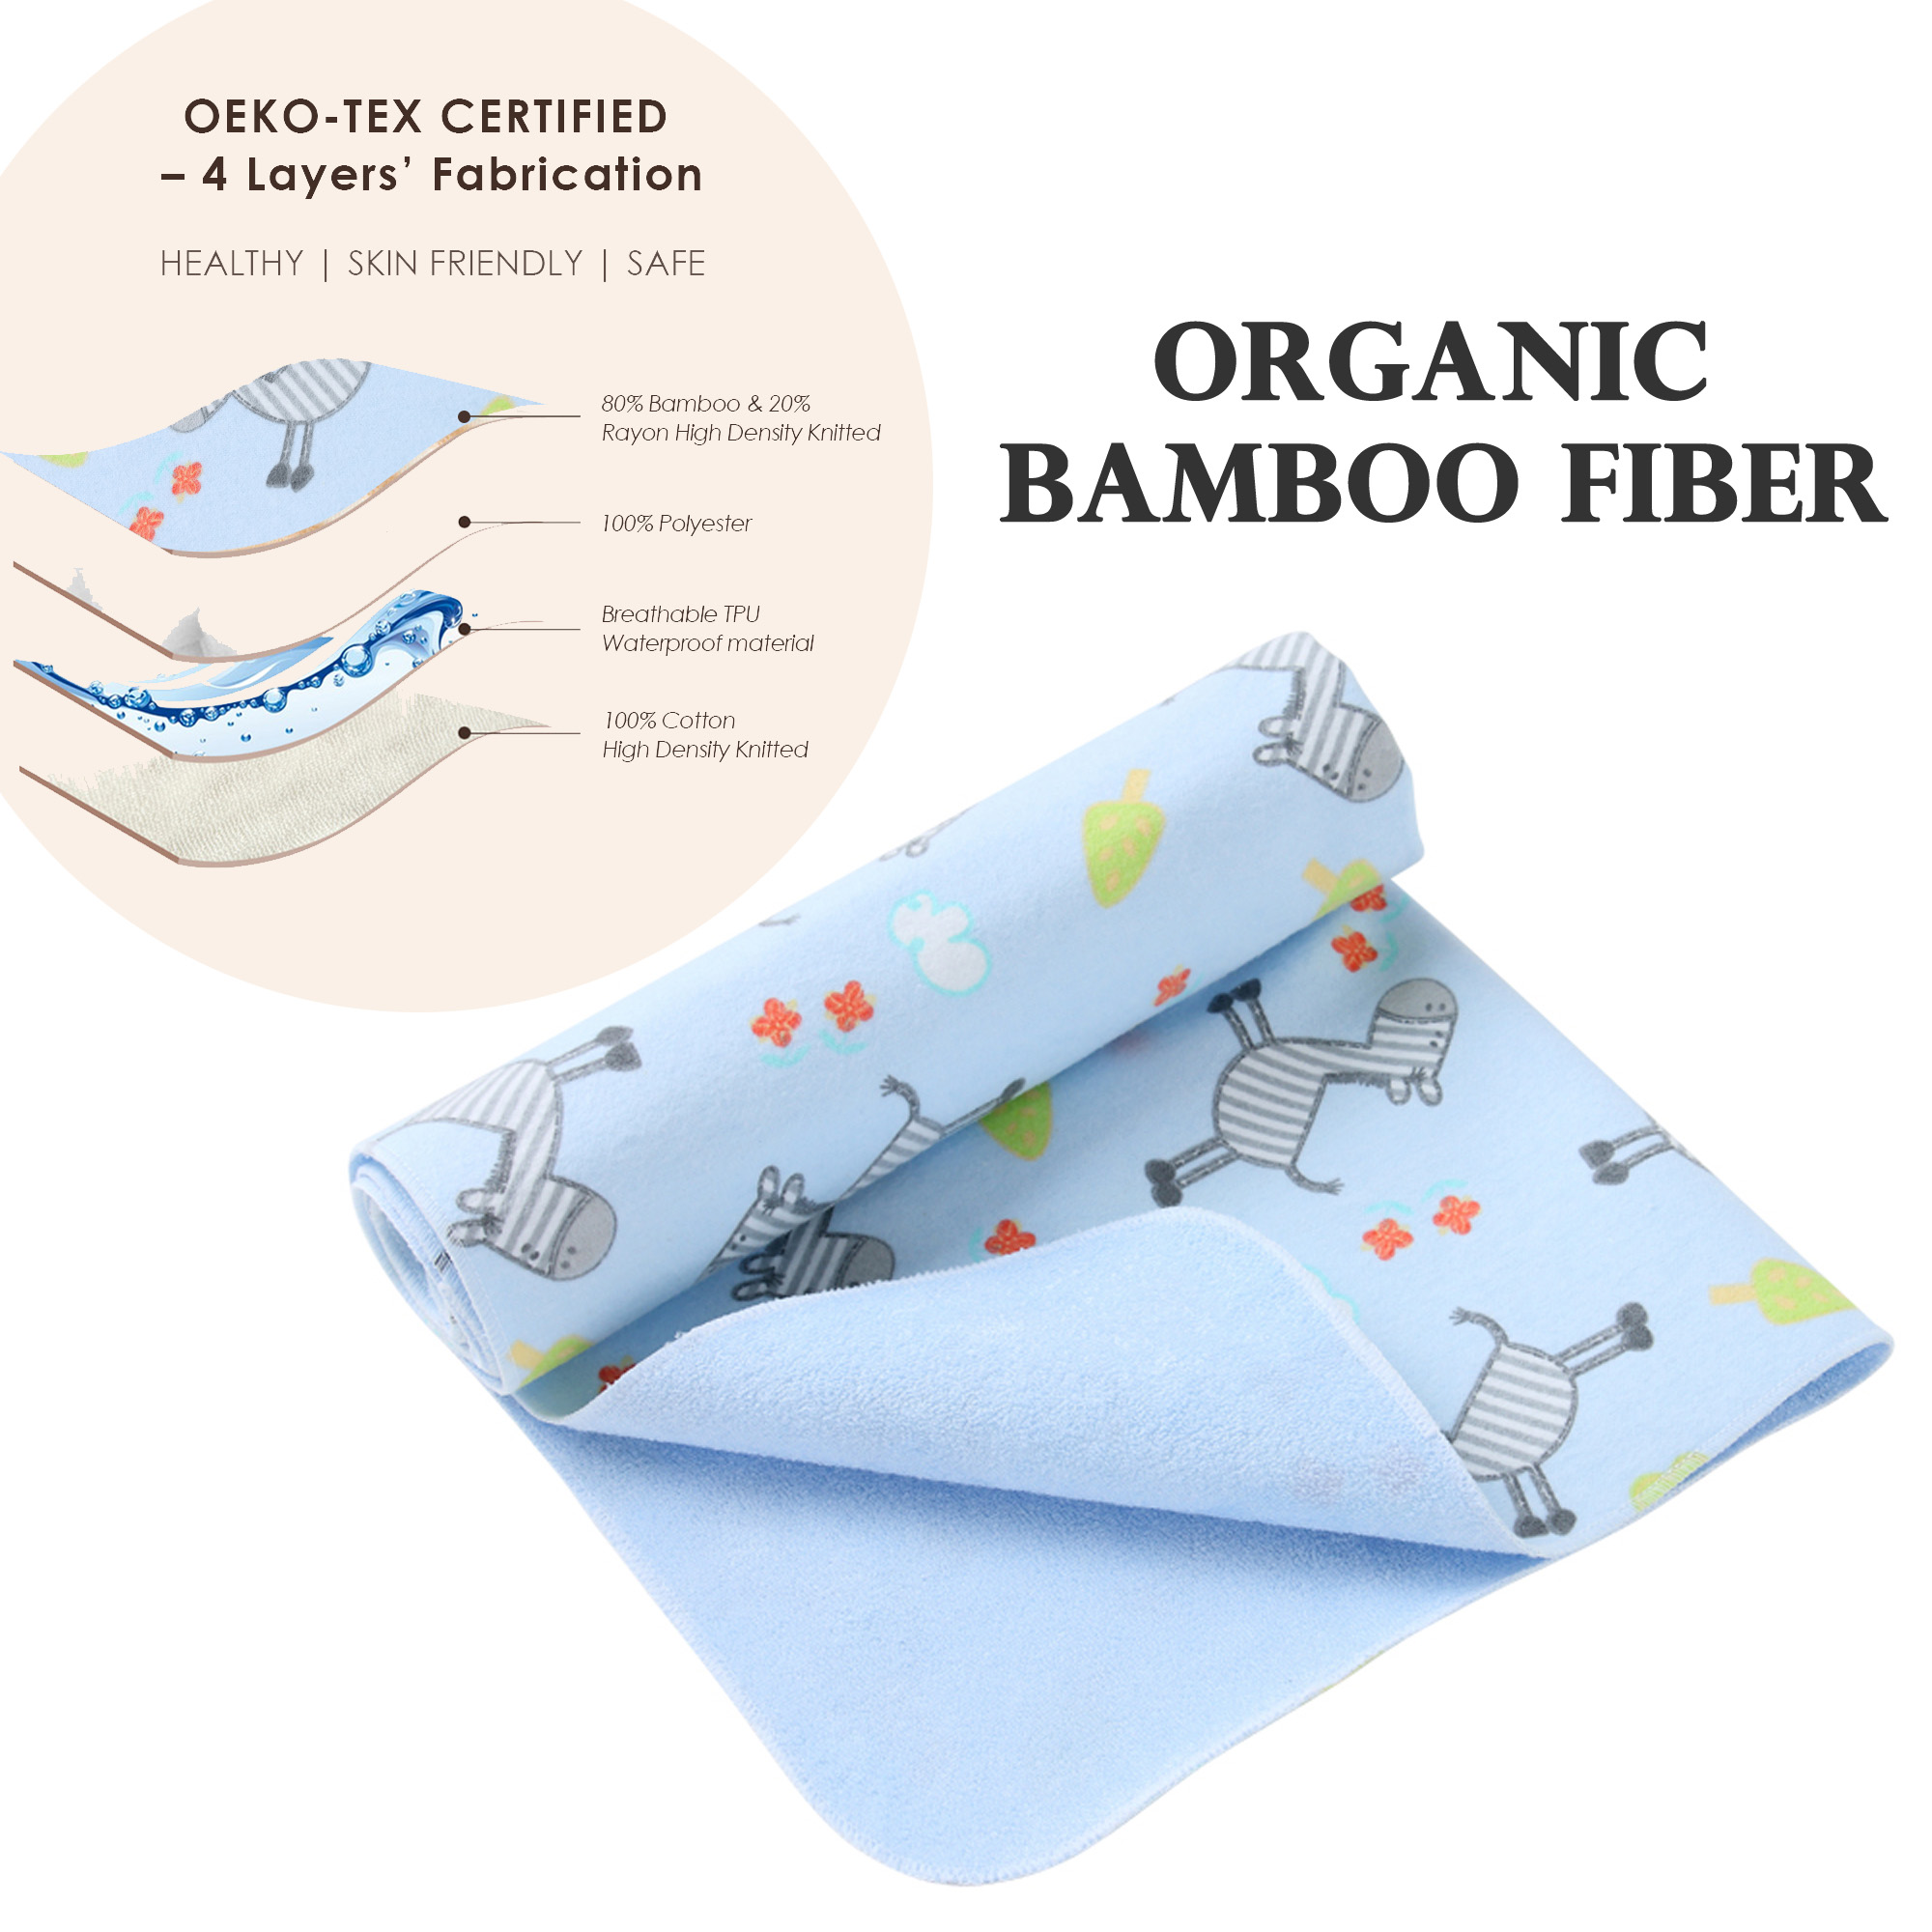 i-baby Organic Bamboo Baby Changing Pad, Toddler Waterproof Mat, Kids Breathable Urine pad, Leak Proof Mattress Pad 50x70cm image